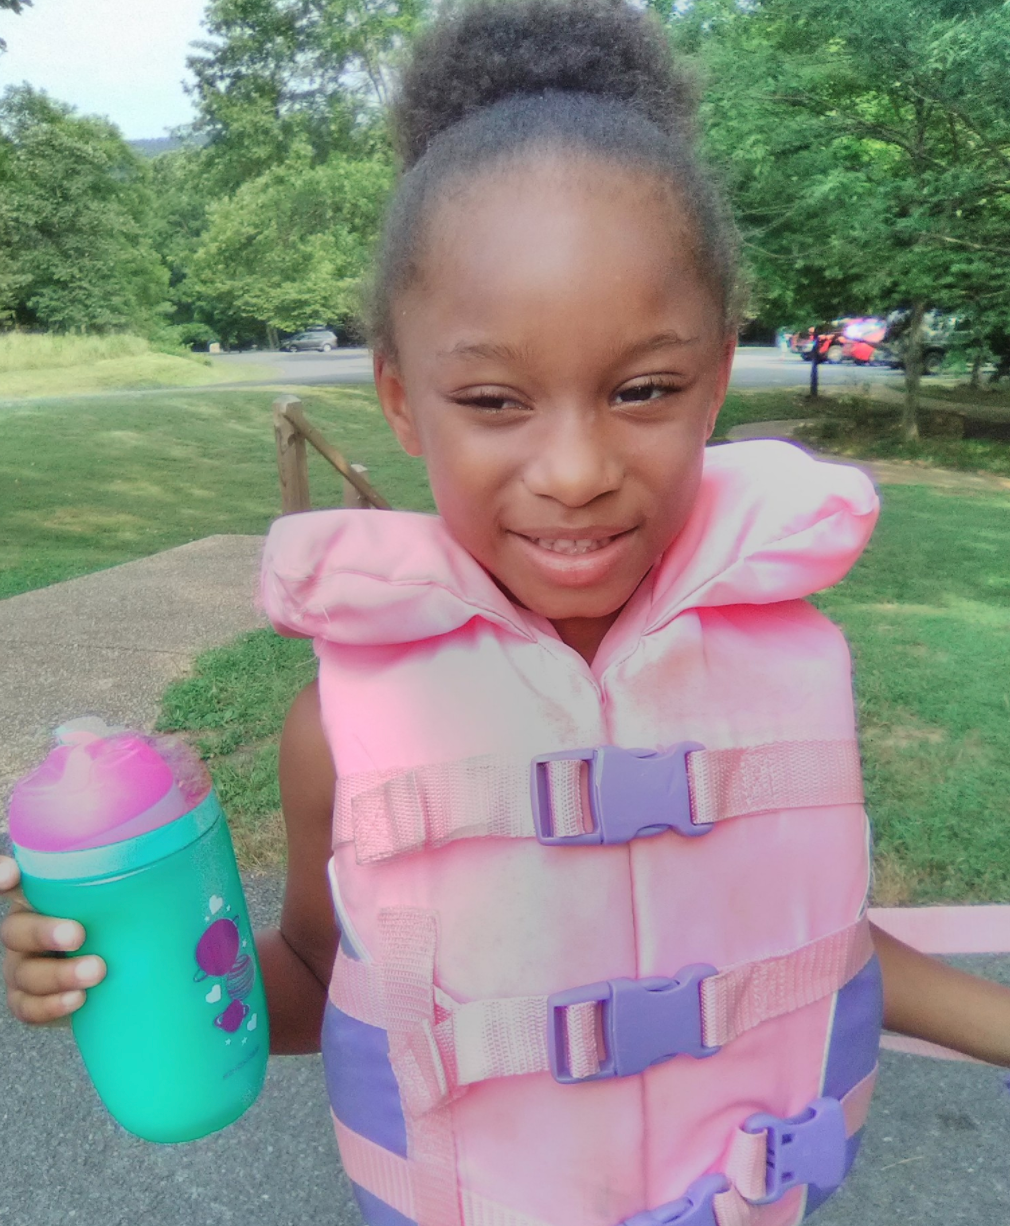 AMBER alert issued for 4-year-old Newport News girl